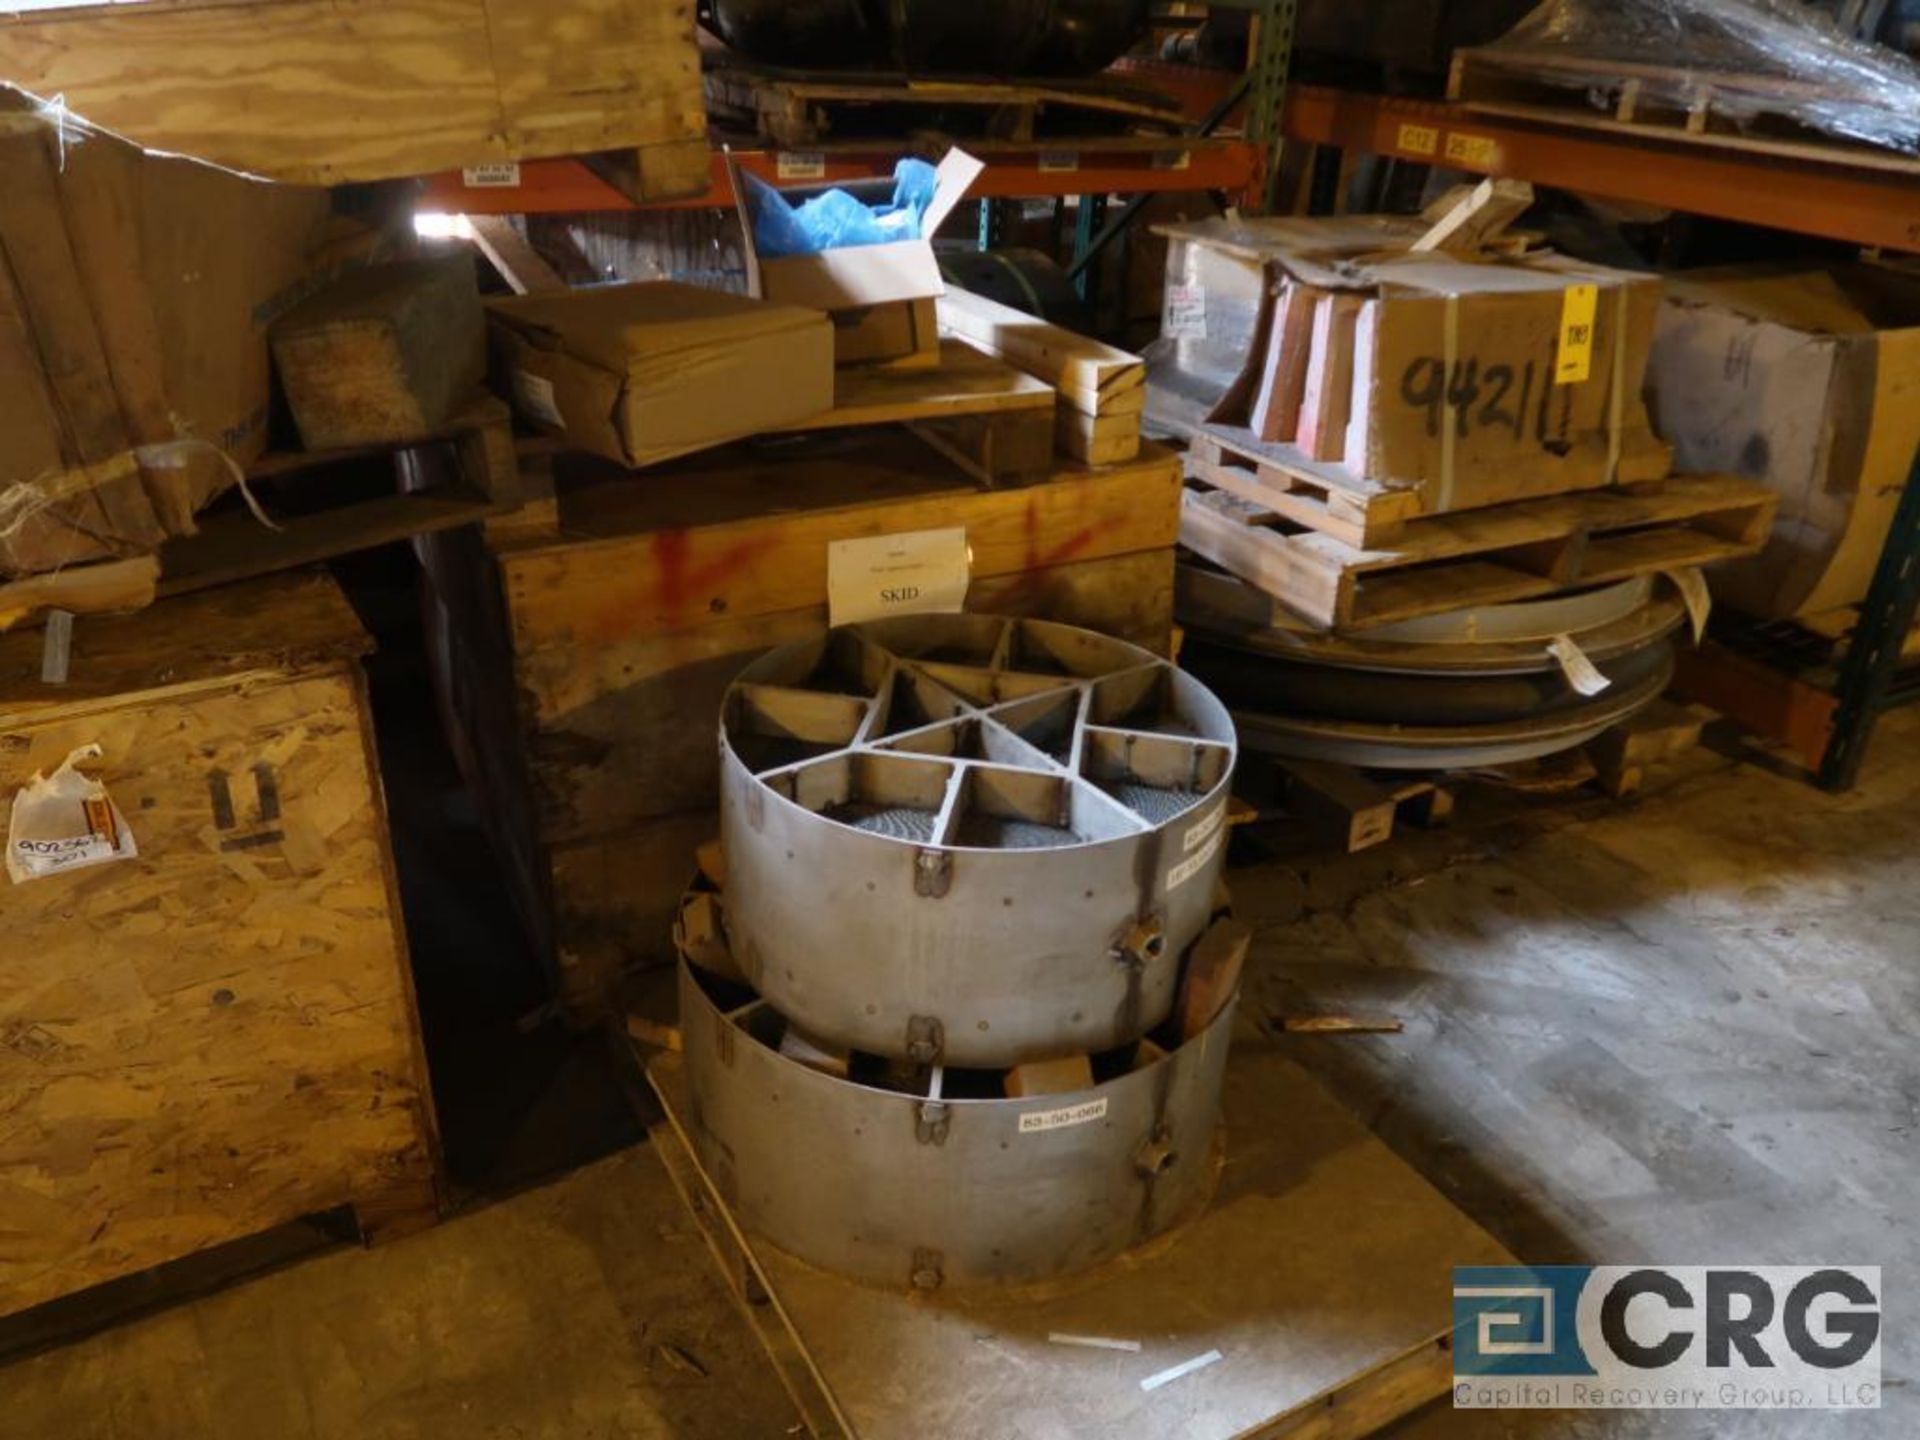 Lot of assorted parts including expansion joint, valves, fan blade, and rotors (Next Bay Cage Area) - Image 6 of 15